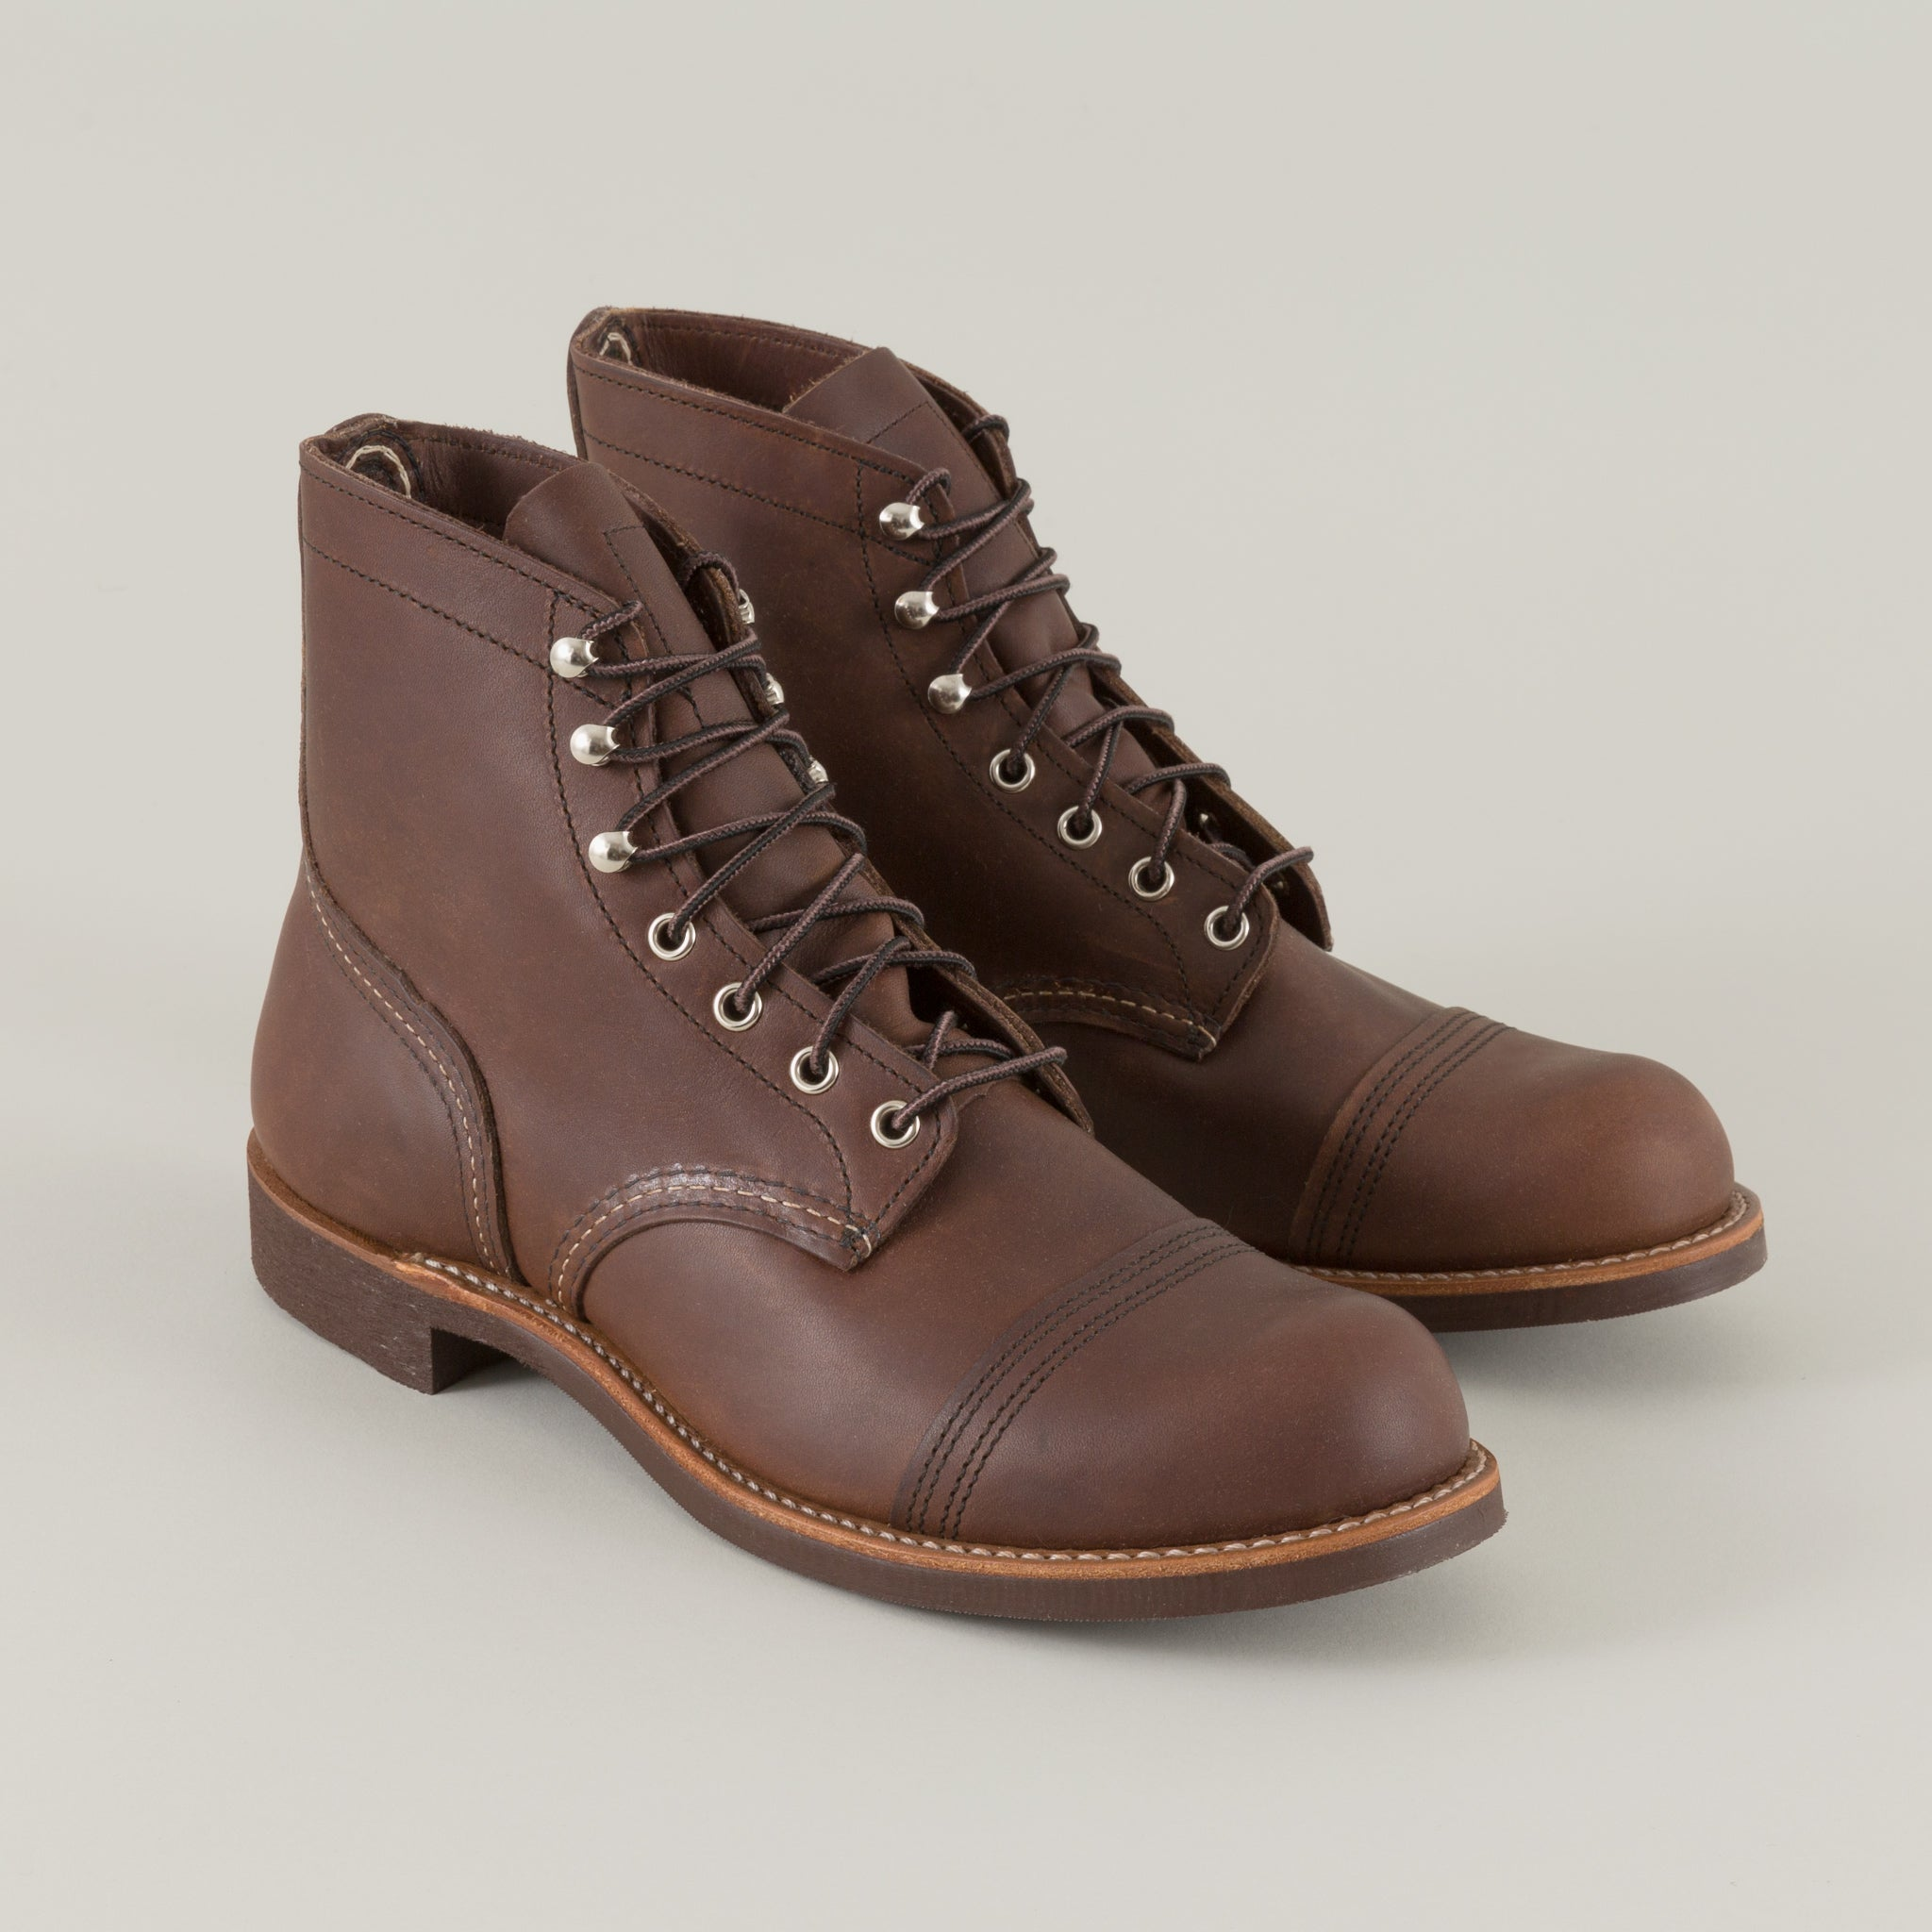 Iron Ranger Boot, Amber Harness - The